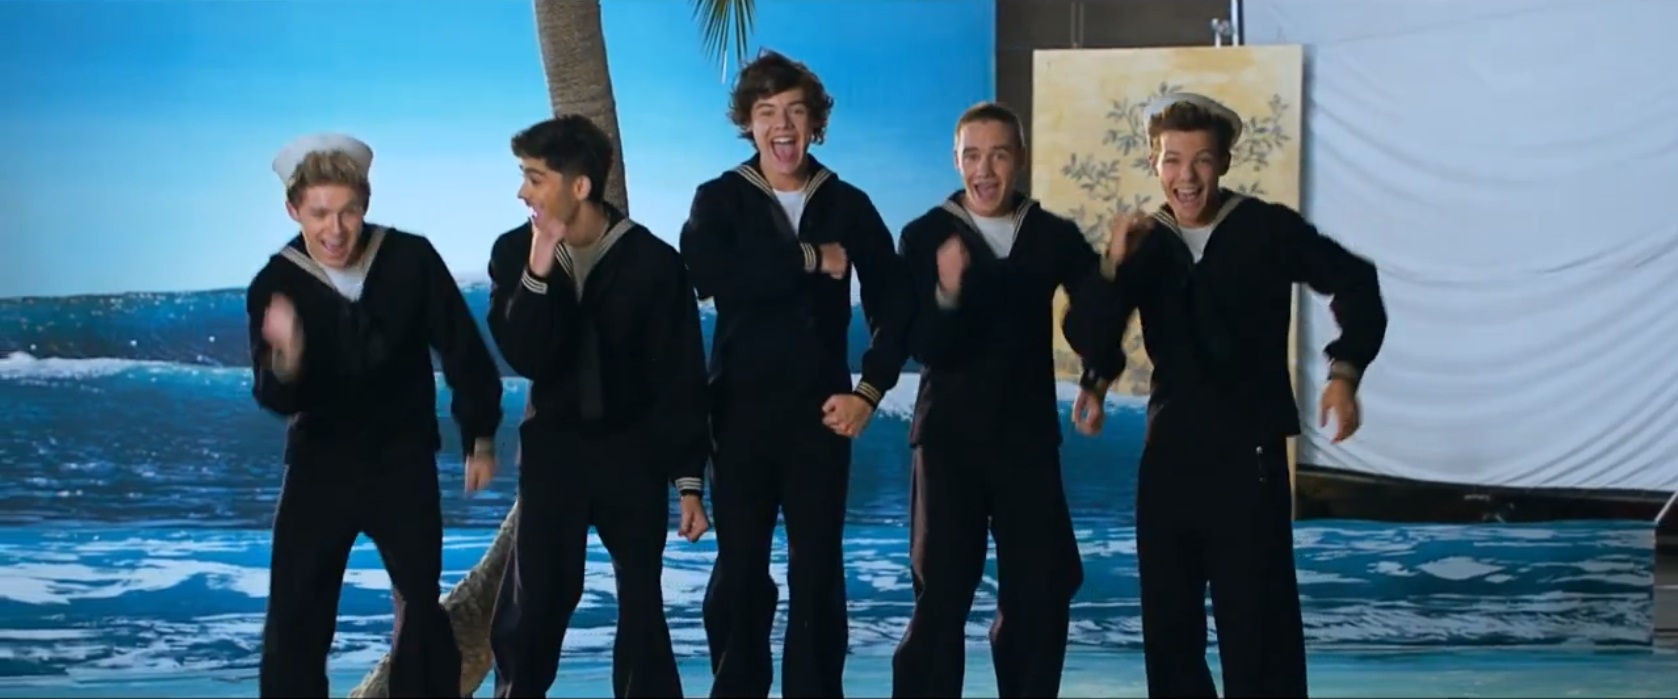 One Direction unveil camp new music video for Kiss You – Watch here